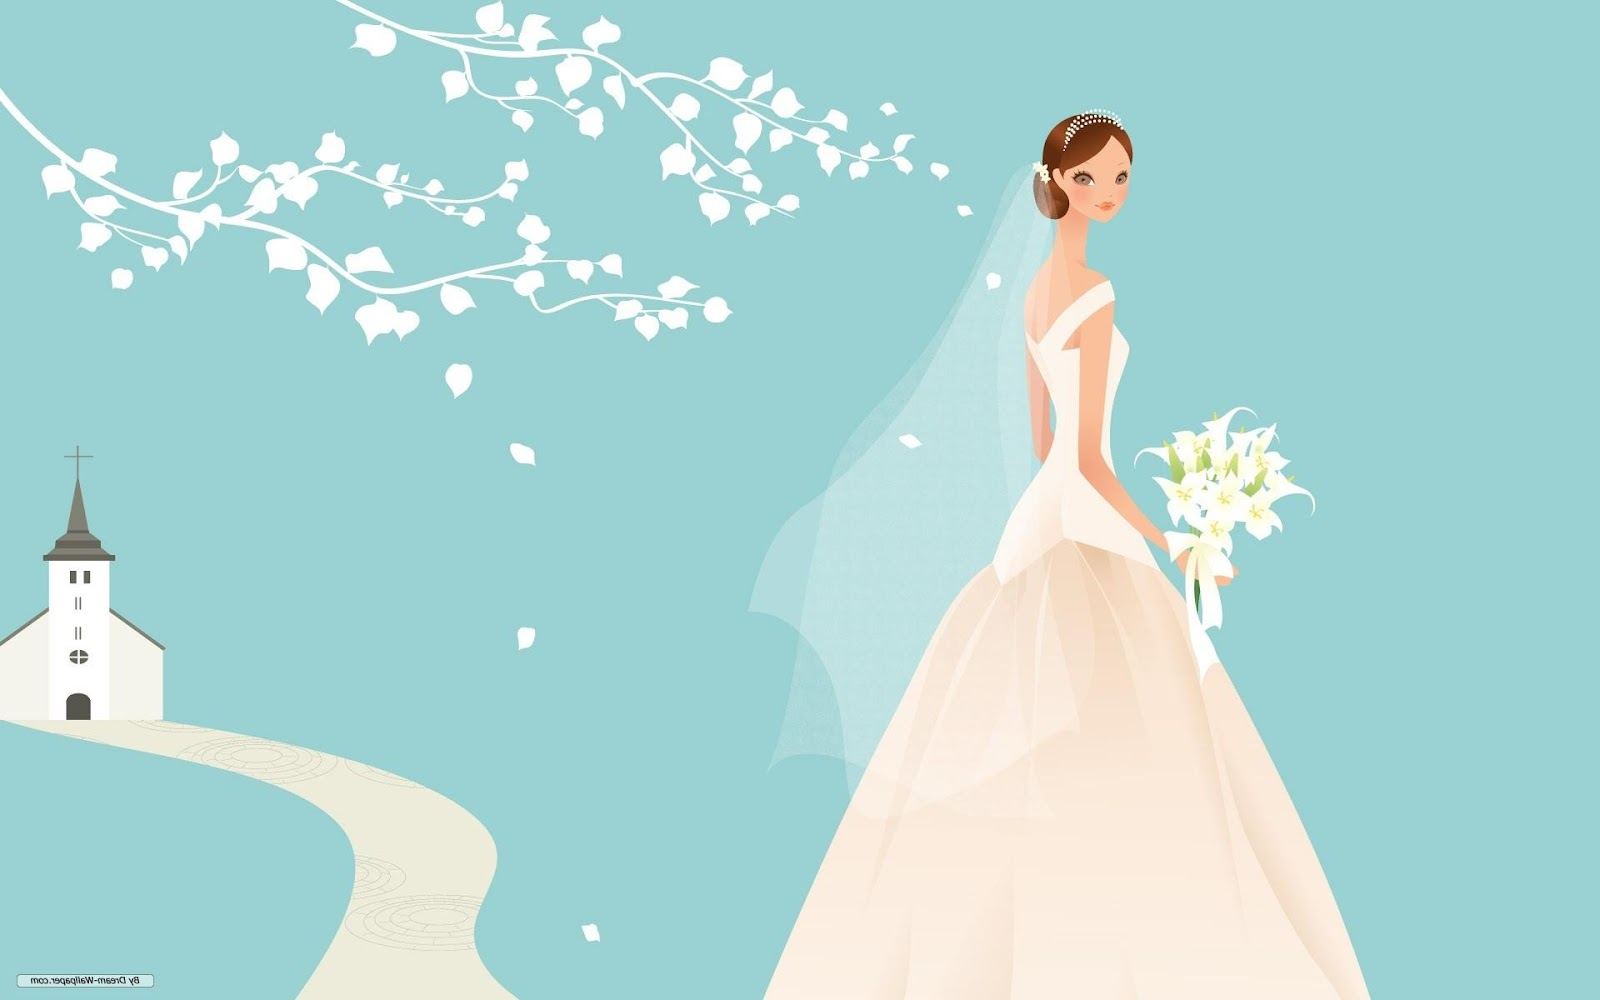 Free Art wallpaper - Wedding